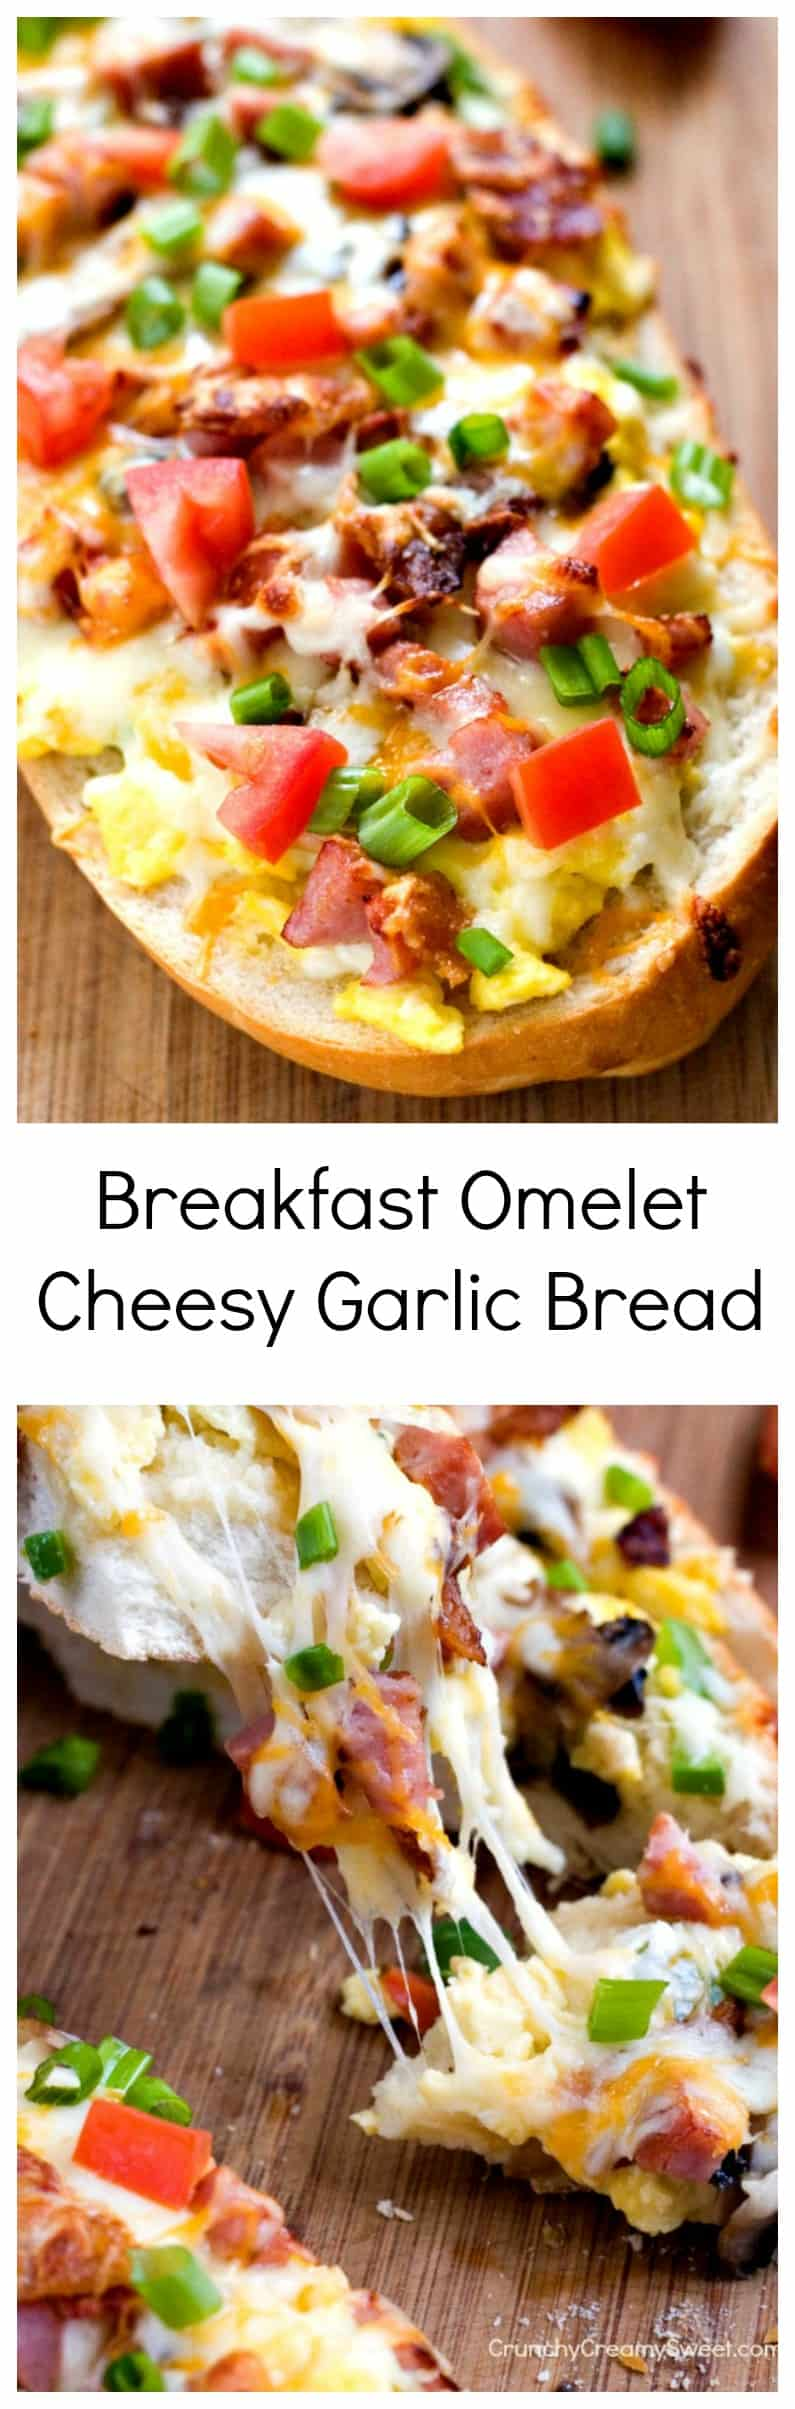 Breakfast Omelet Cheesy Garlic Bread - easy cheesy garlic bread topped ...